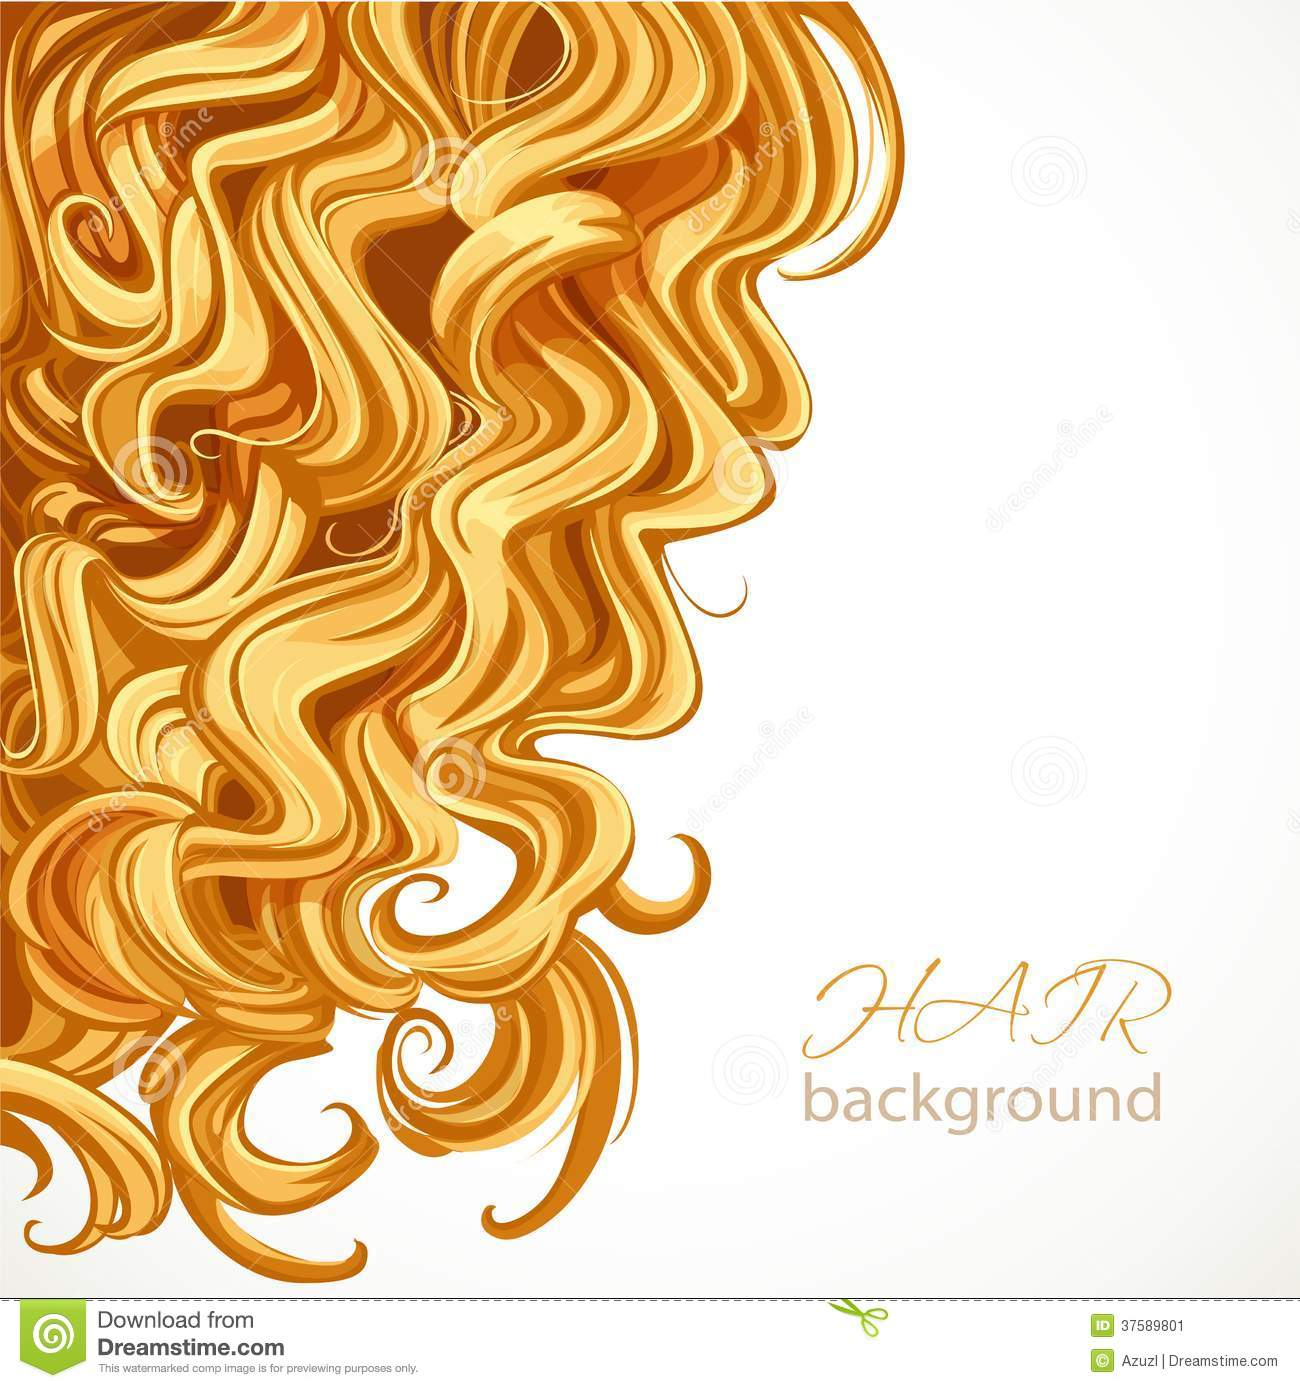 More similar stock images of ` Background with blond curly hair `